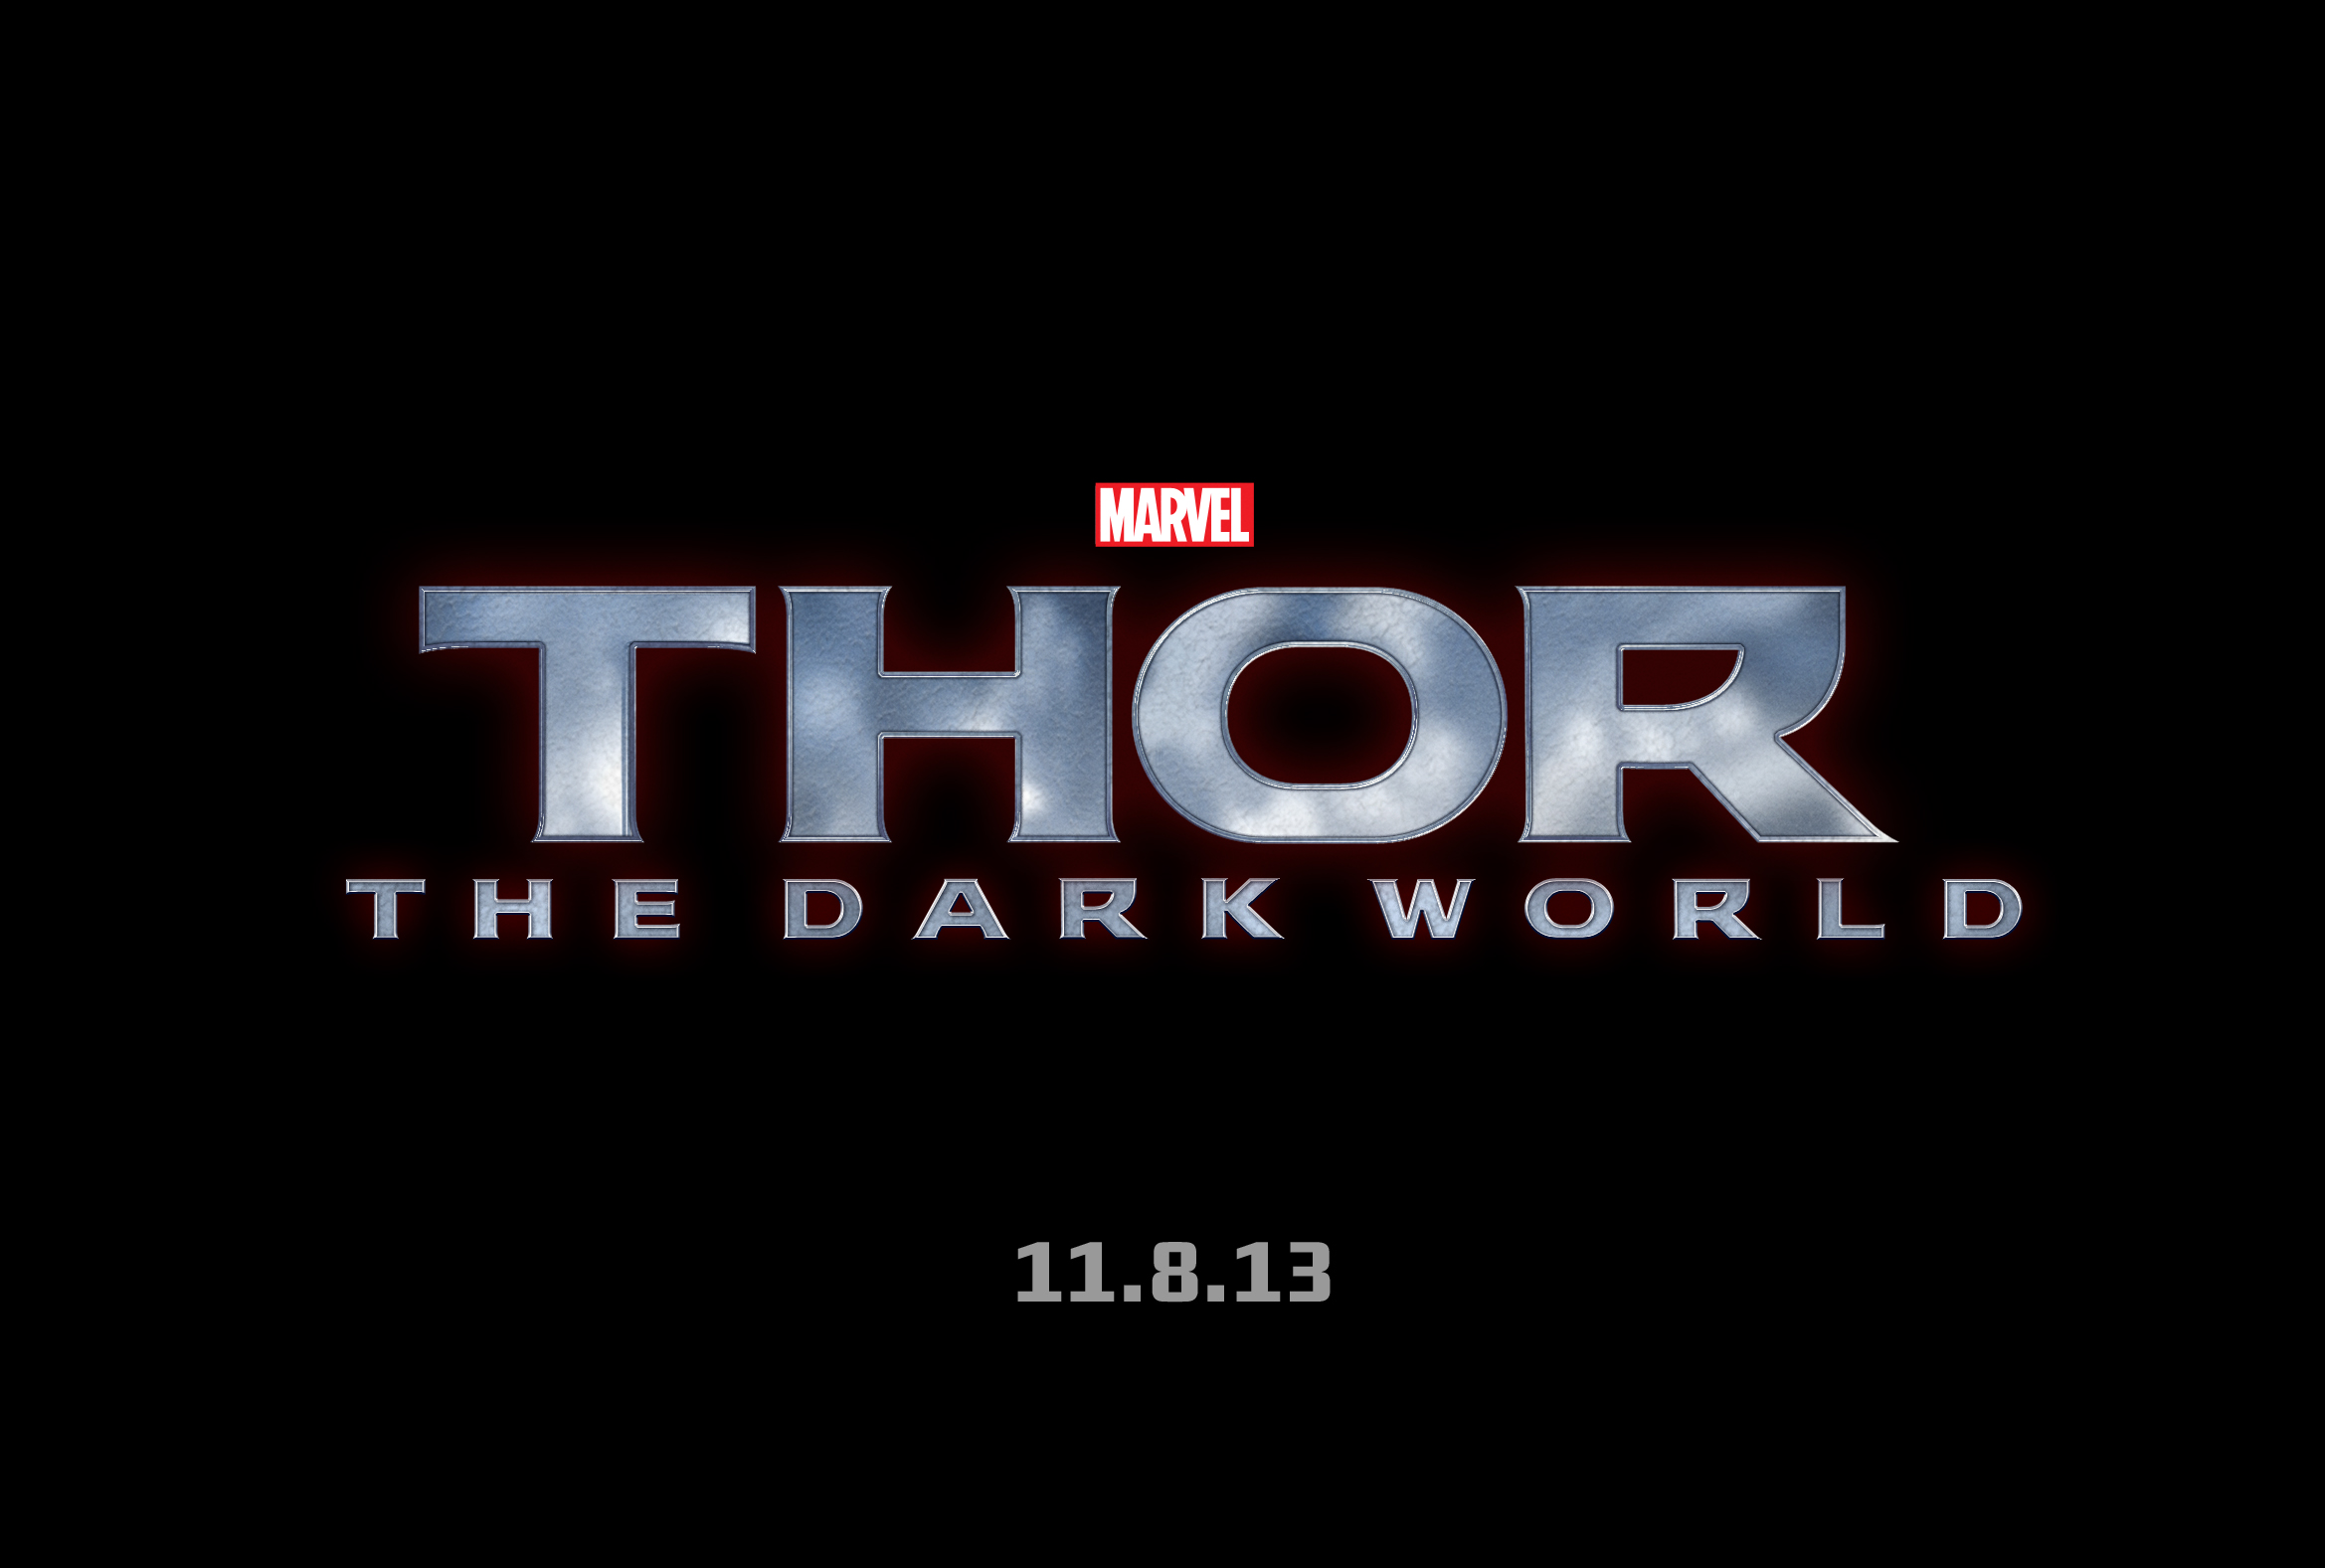 thor 2 dark world logo